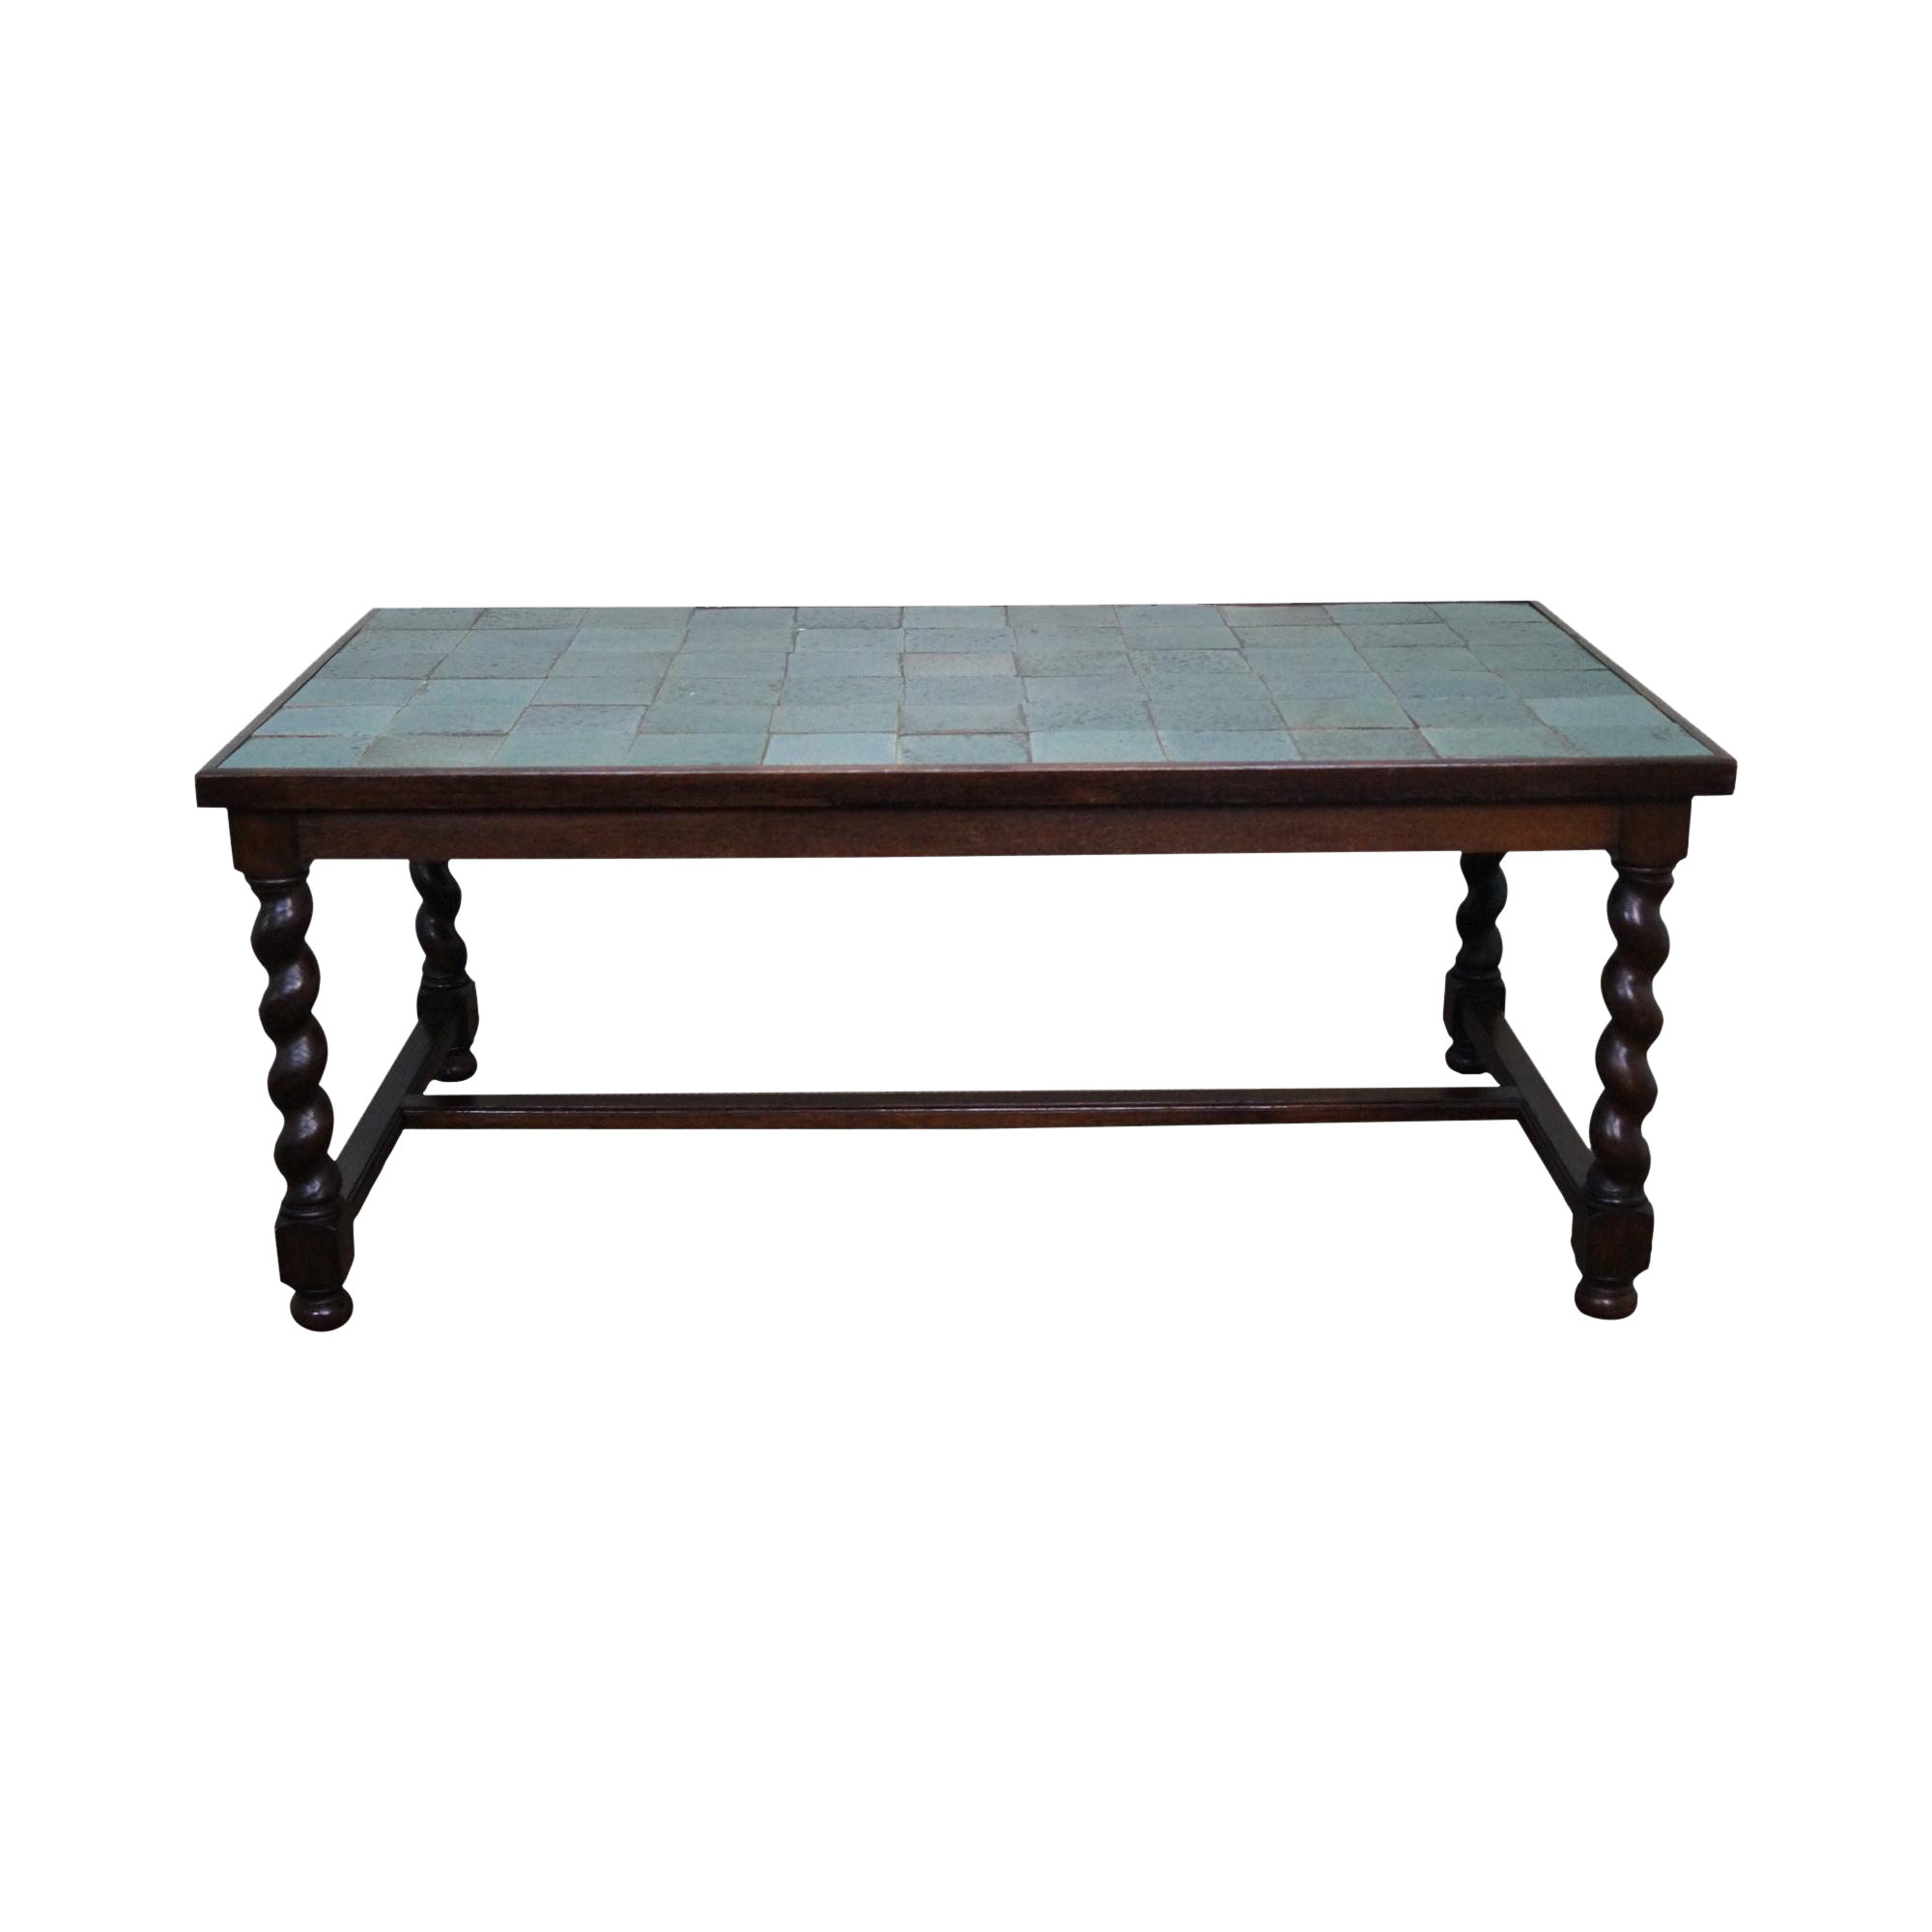 Antique Arts amp Crafts Oak Barley Twist Green Tile Top  : antique arts and crafts oak barley twist green tile top dining table 8759aspectfitampwidth640ampheight640 from www.chairish.com size 640 x 640 jpeg 22kB